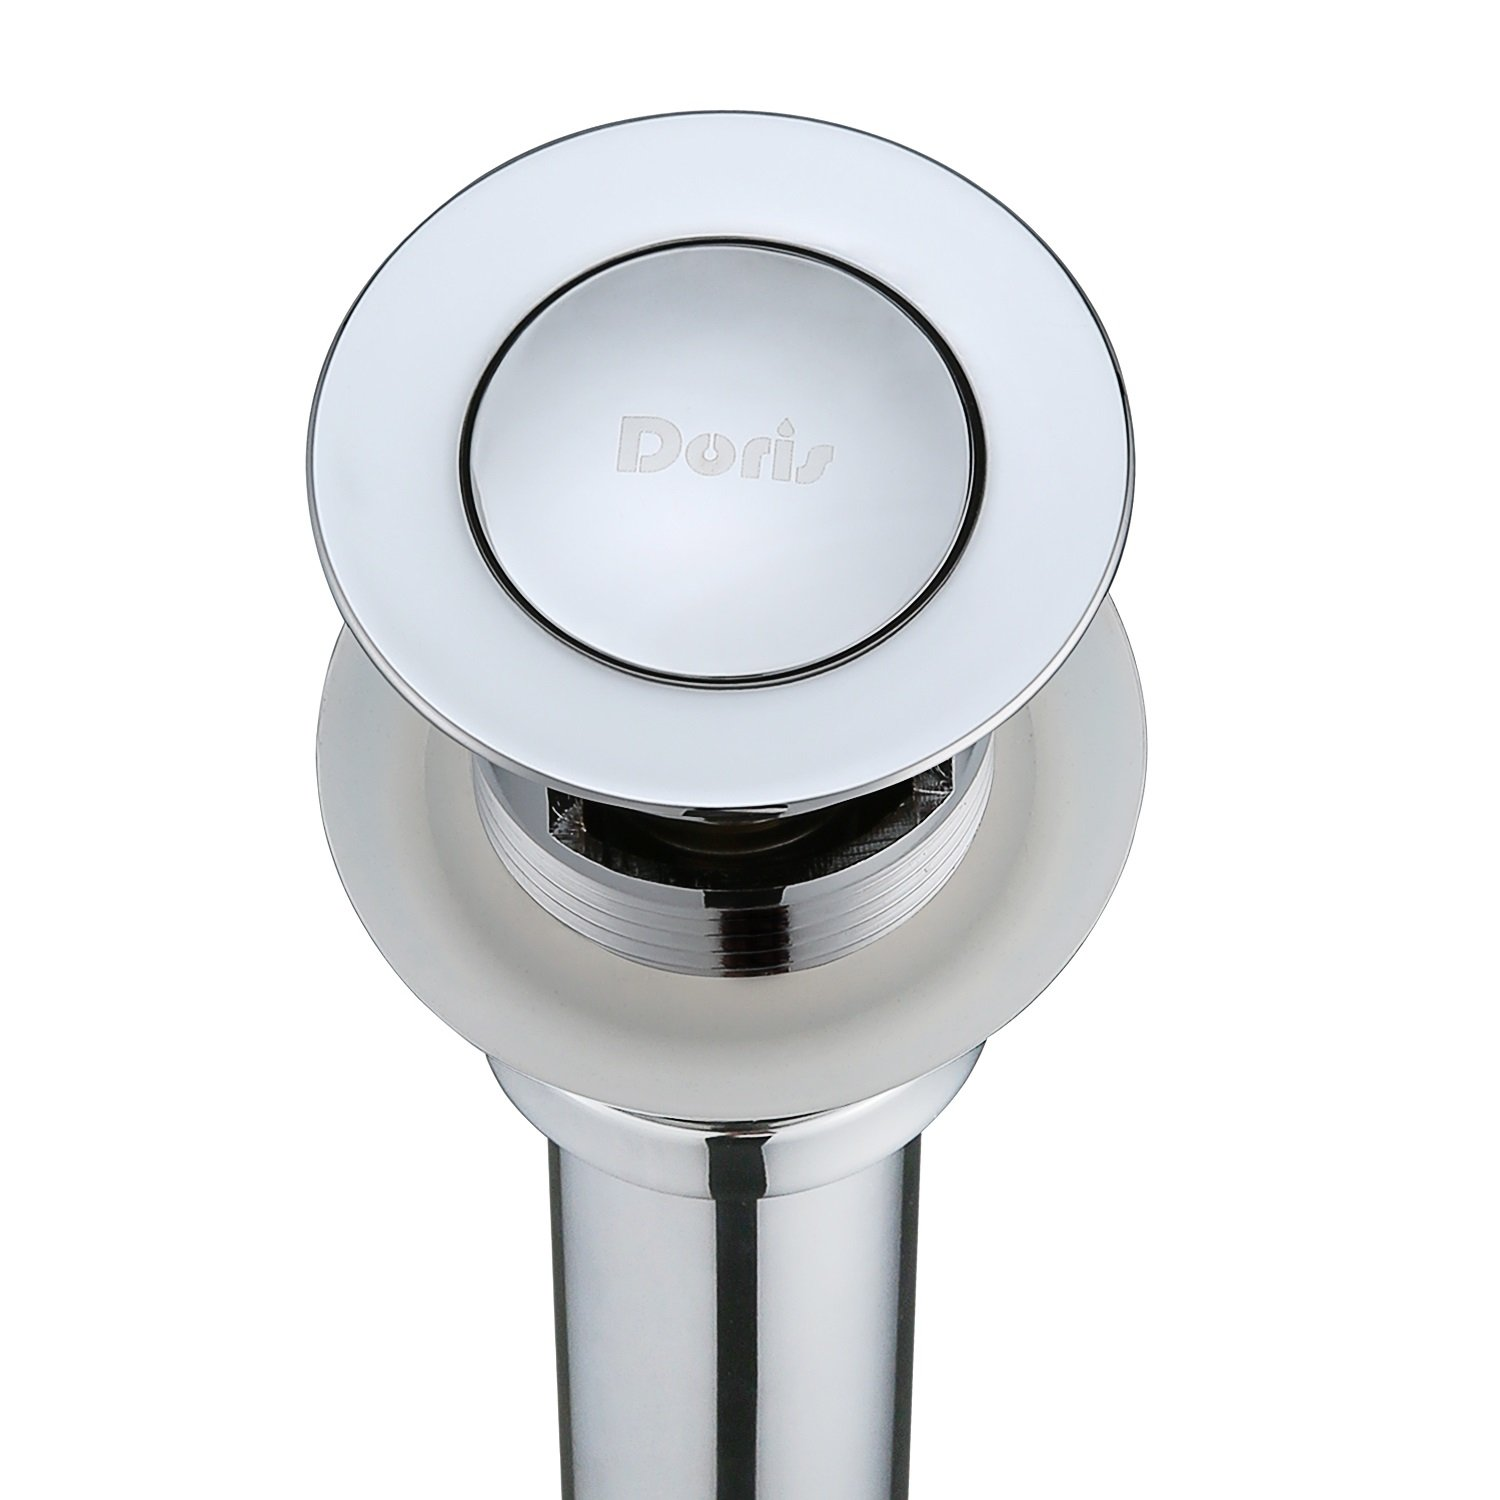 Bathroom Faucet Sink Drain Assembly - Doris D001 Luxury Pop Up Drain Stopper for Bathroom Sink with Overflow,Chrome